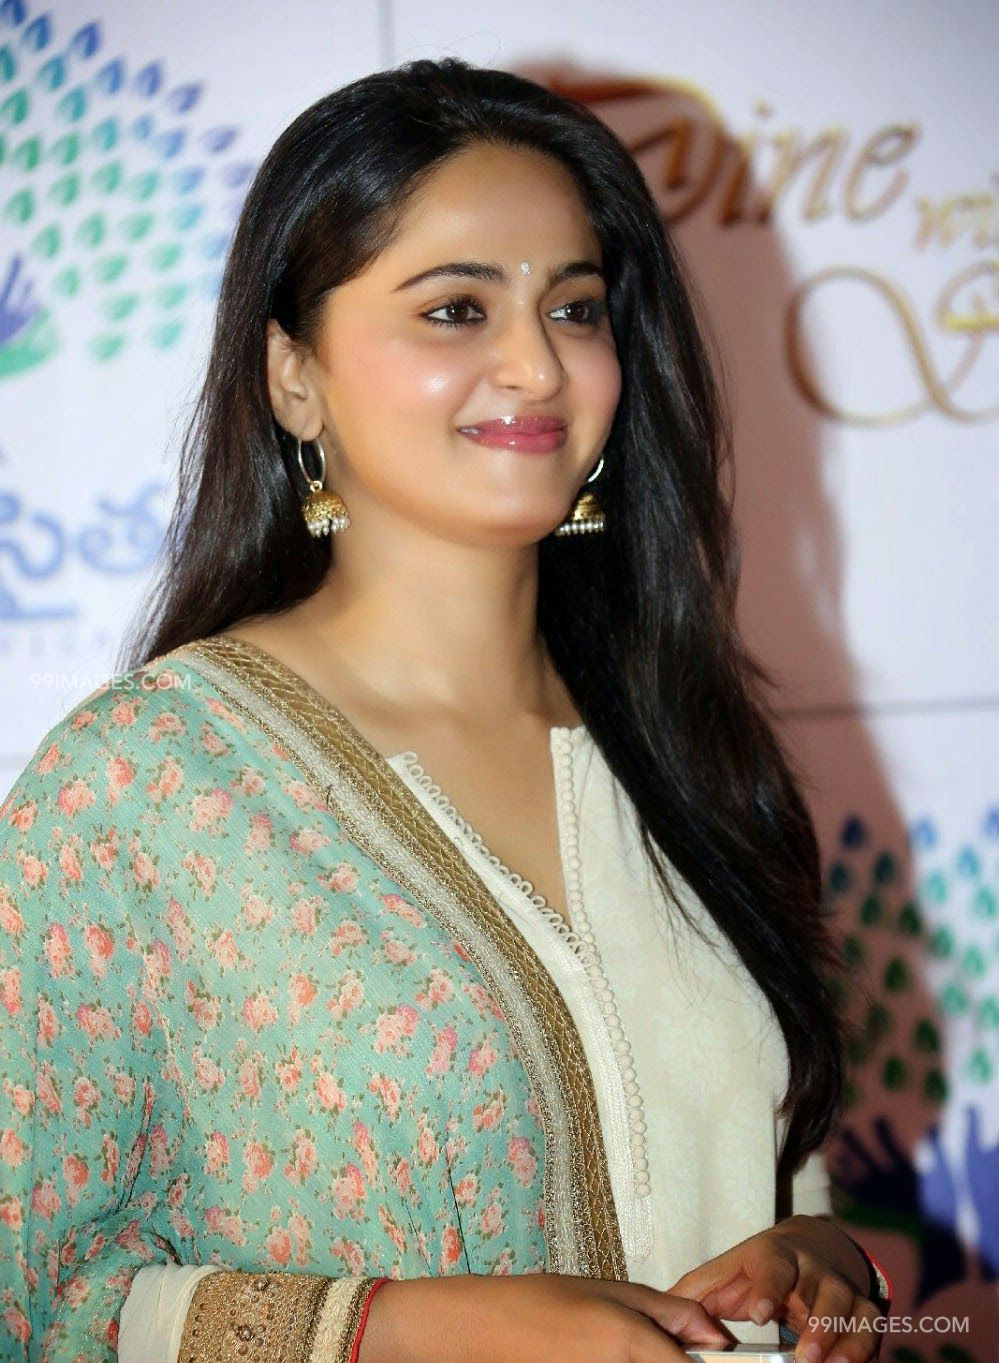 Anushka Shetty Beautiful HD Photoshoot Stills (1080p) (3683) - Anushka Shetty